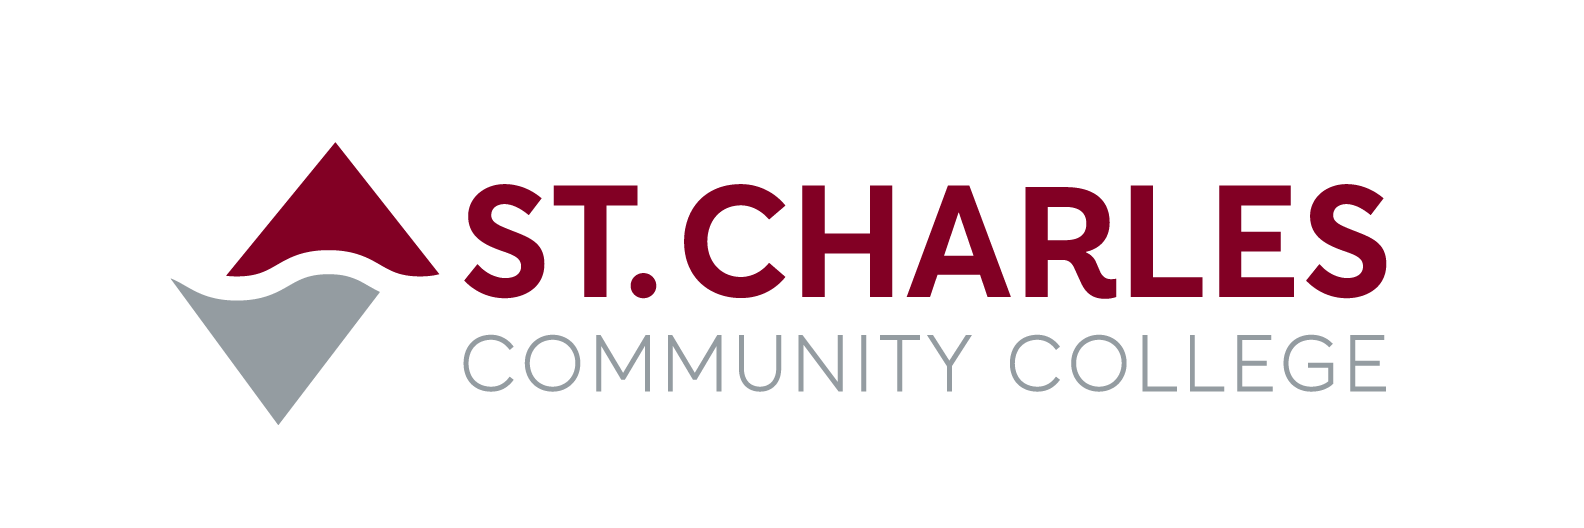 St charles community collage - scc